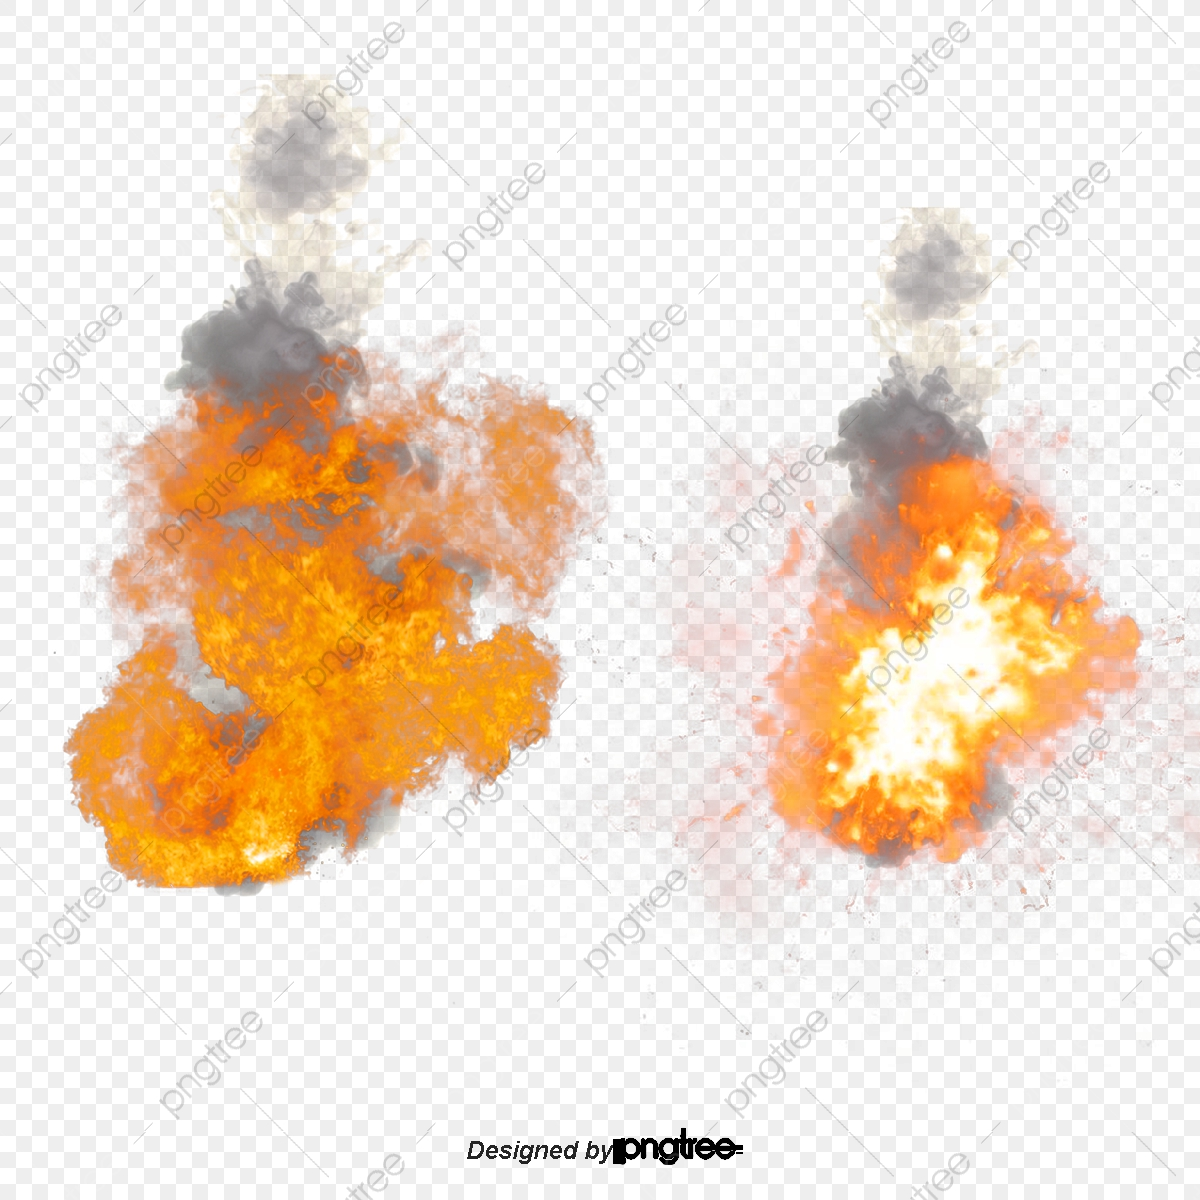 Explosion clipart fiery.